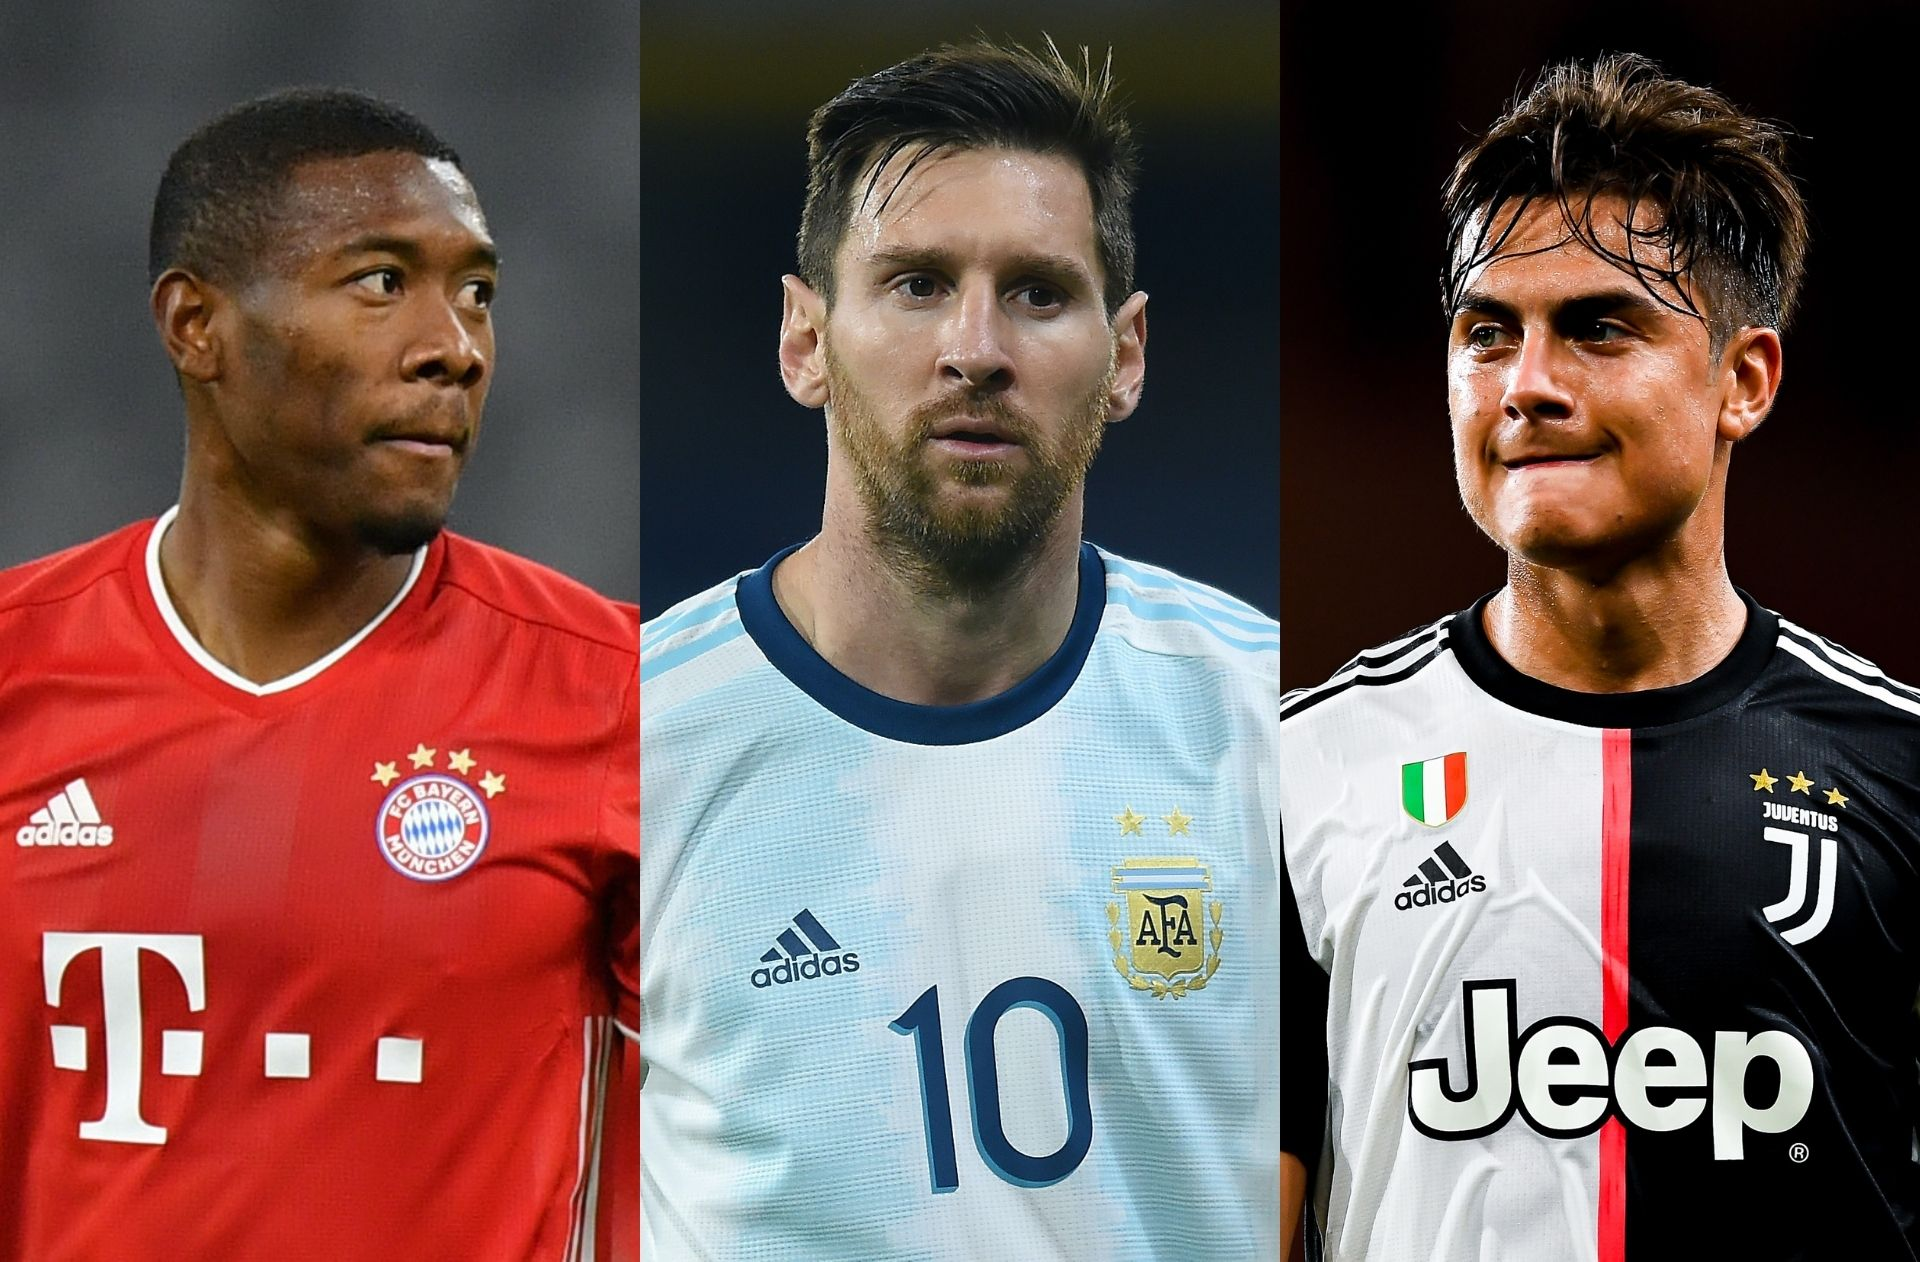 Sunday's transfer rumors - Reason why Messi favors City move revealed